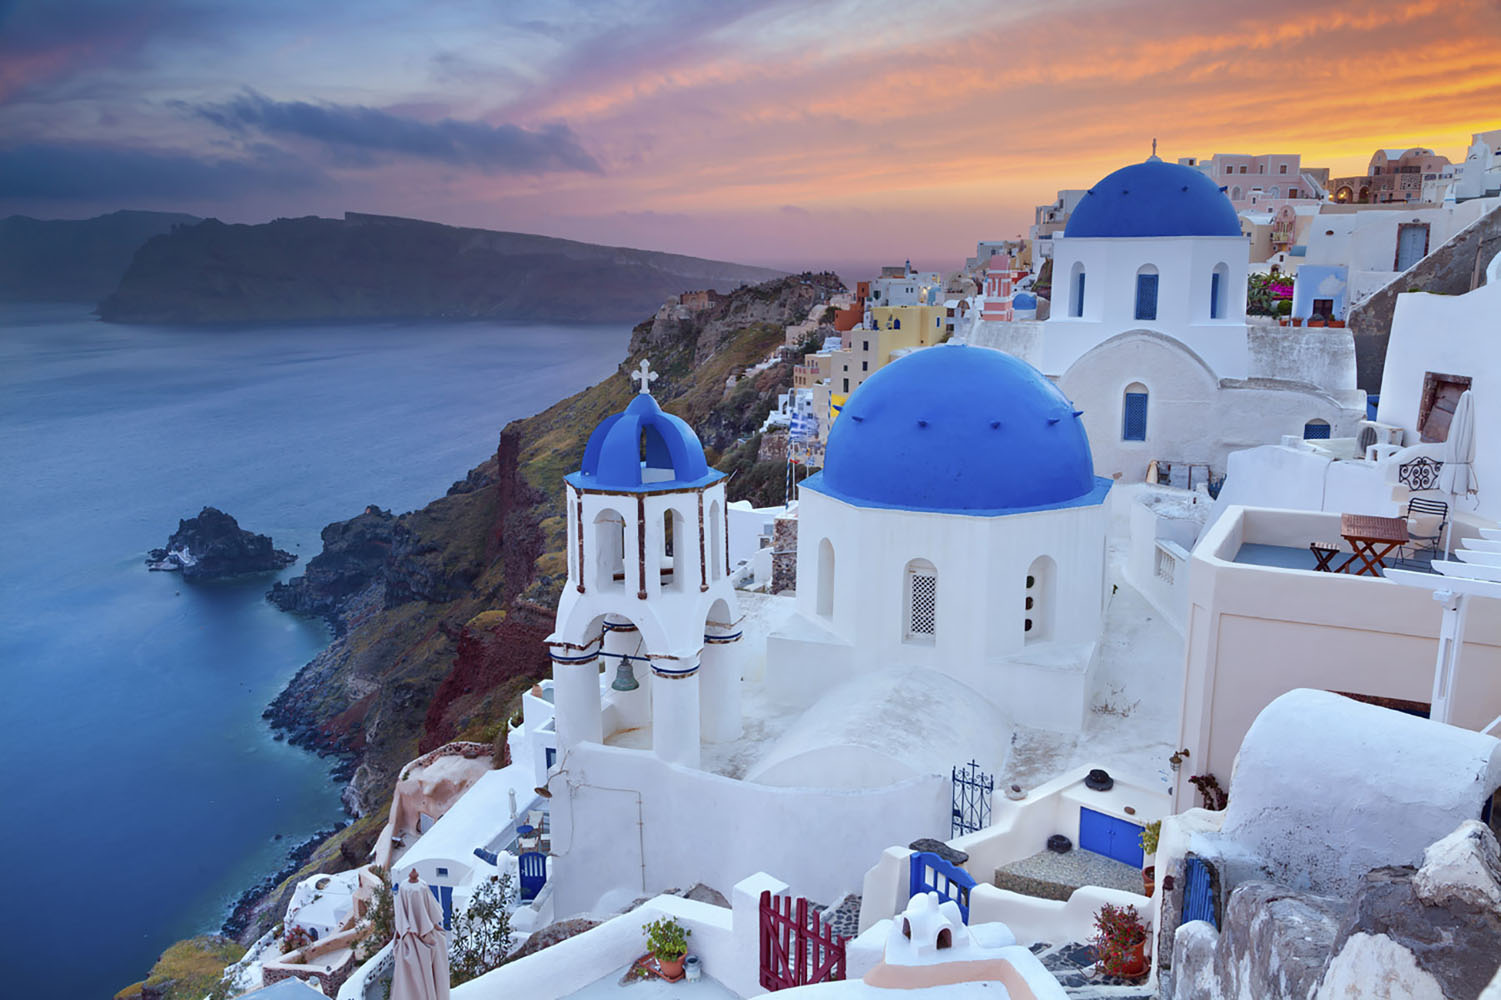 Sunset in Santorini, Greece.